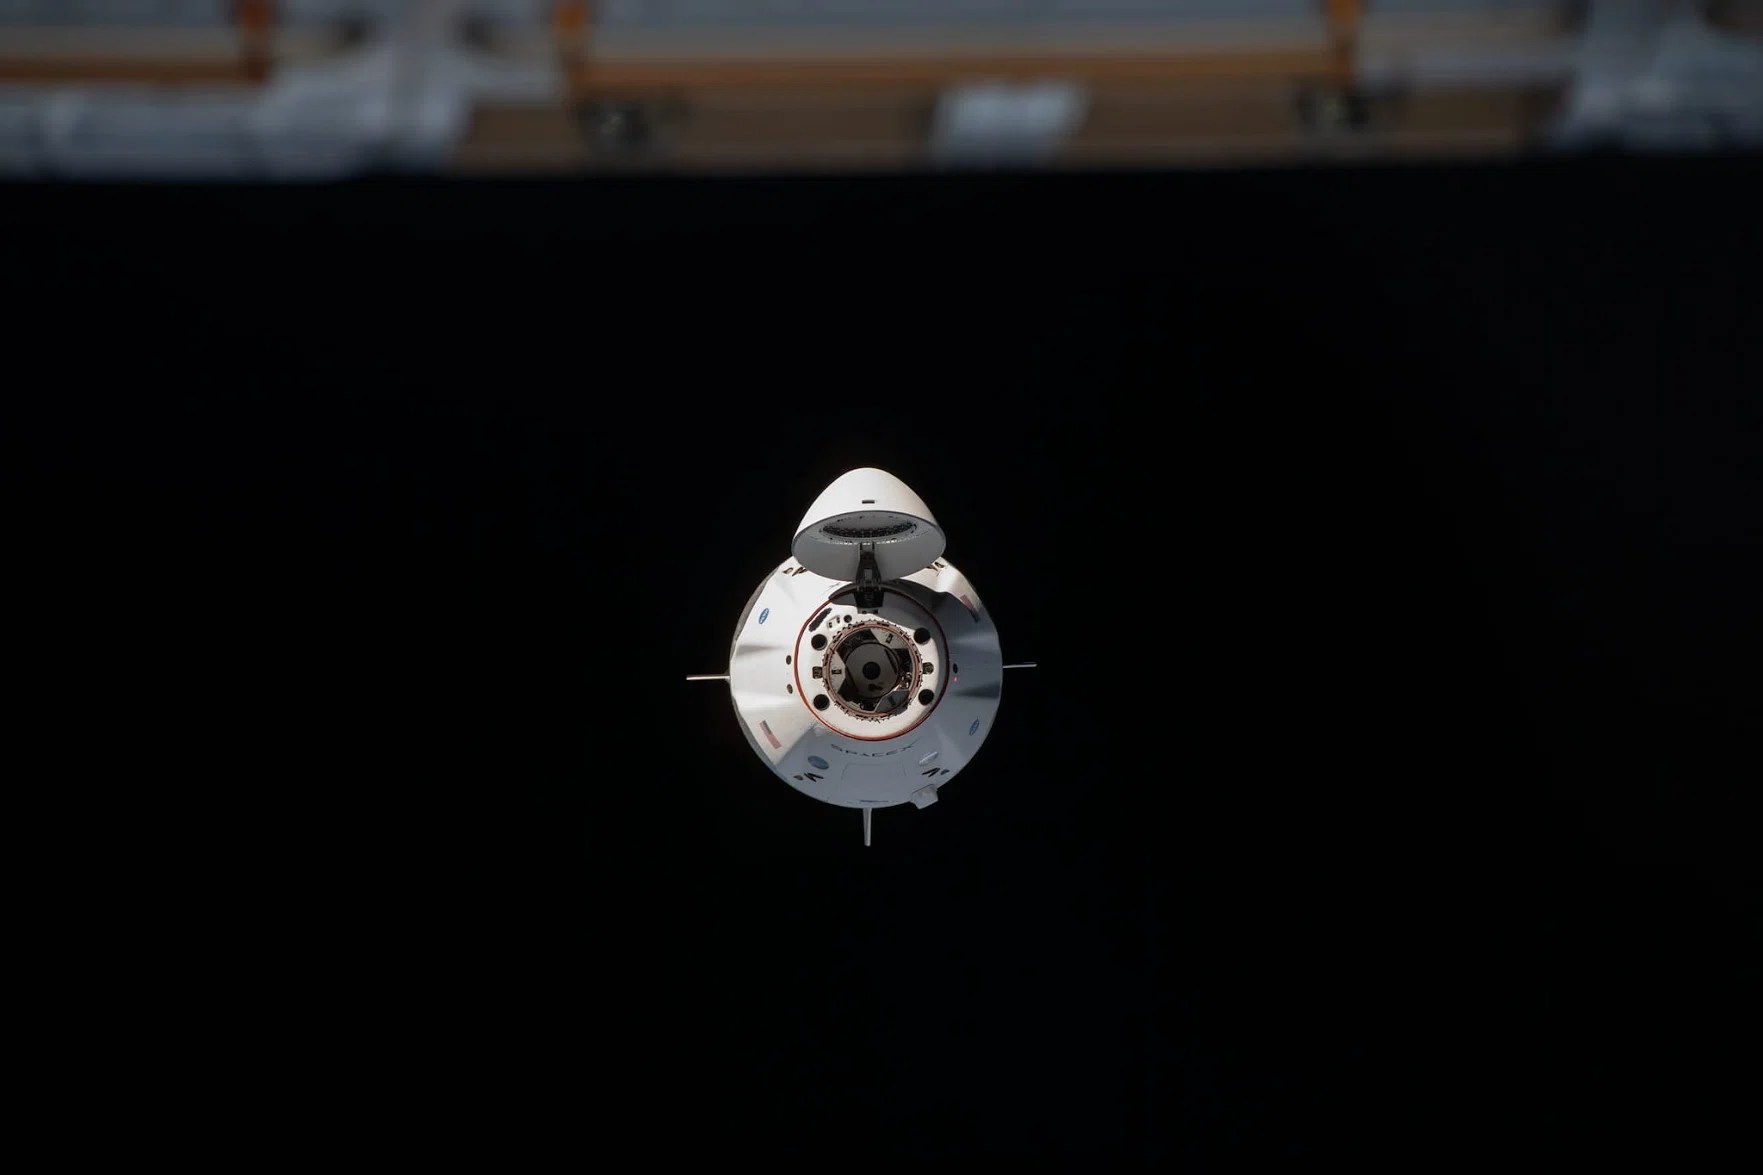 H / O: NASA SpaceX Crew Dragon Resilience ISS 210201 EC